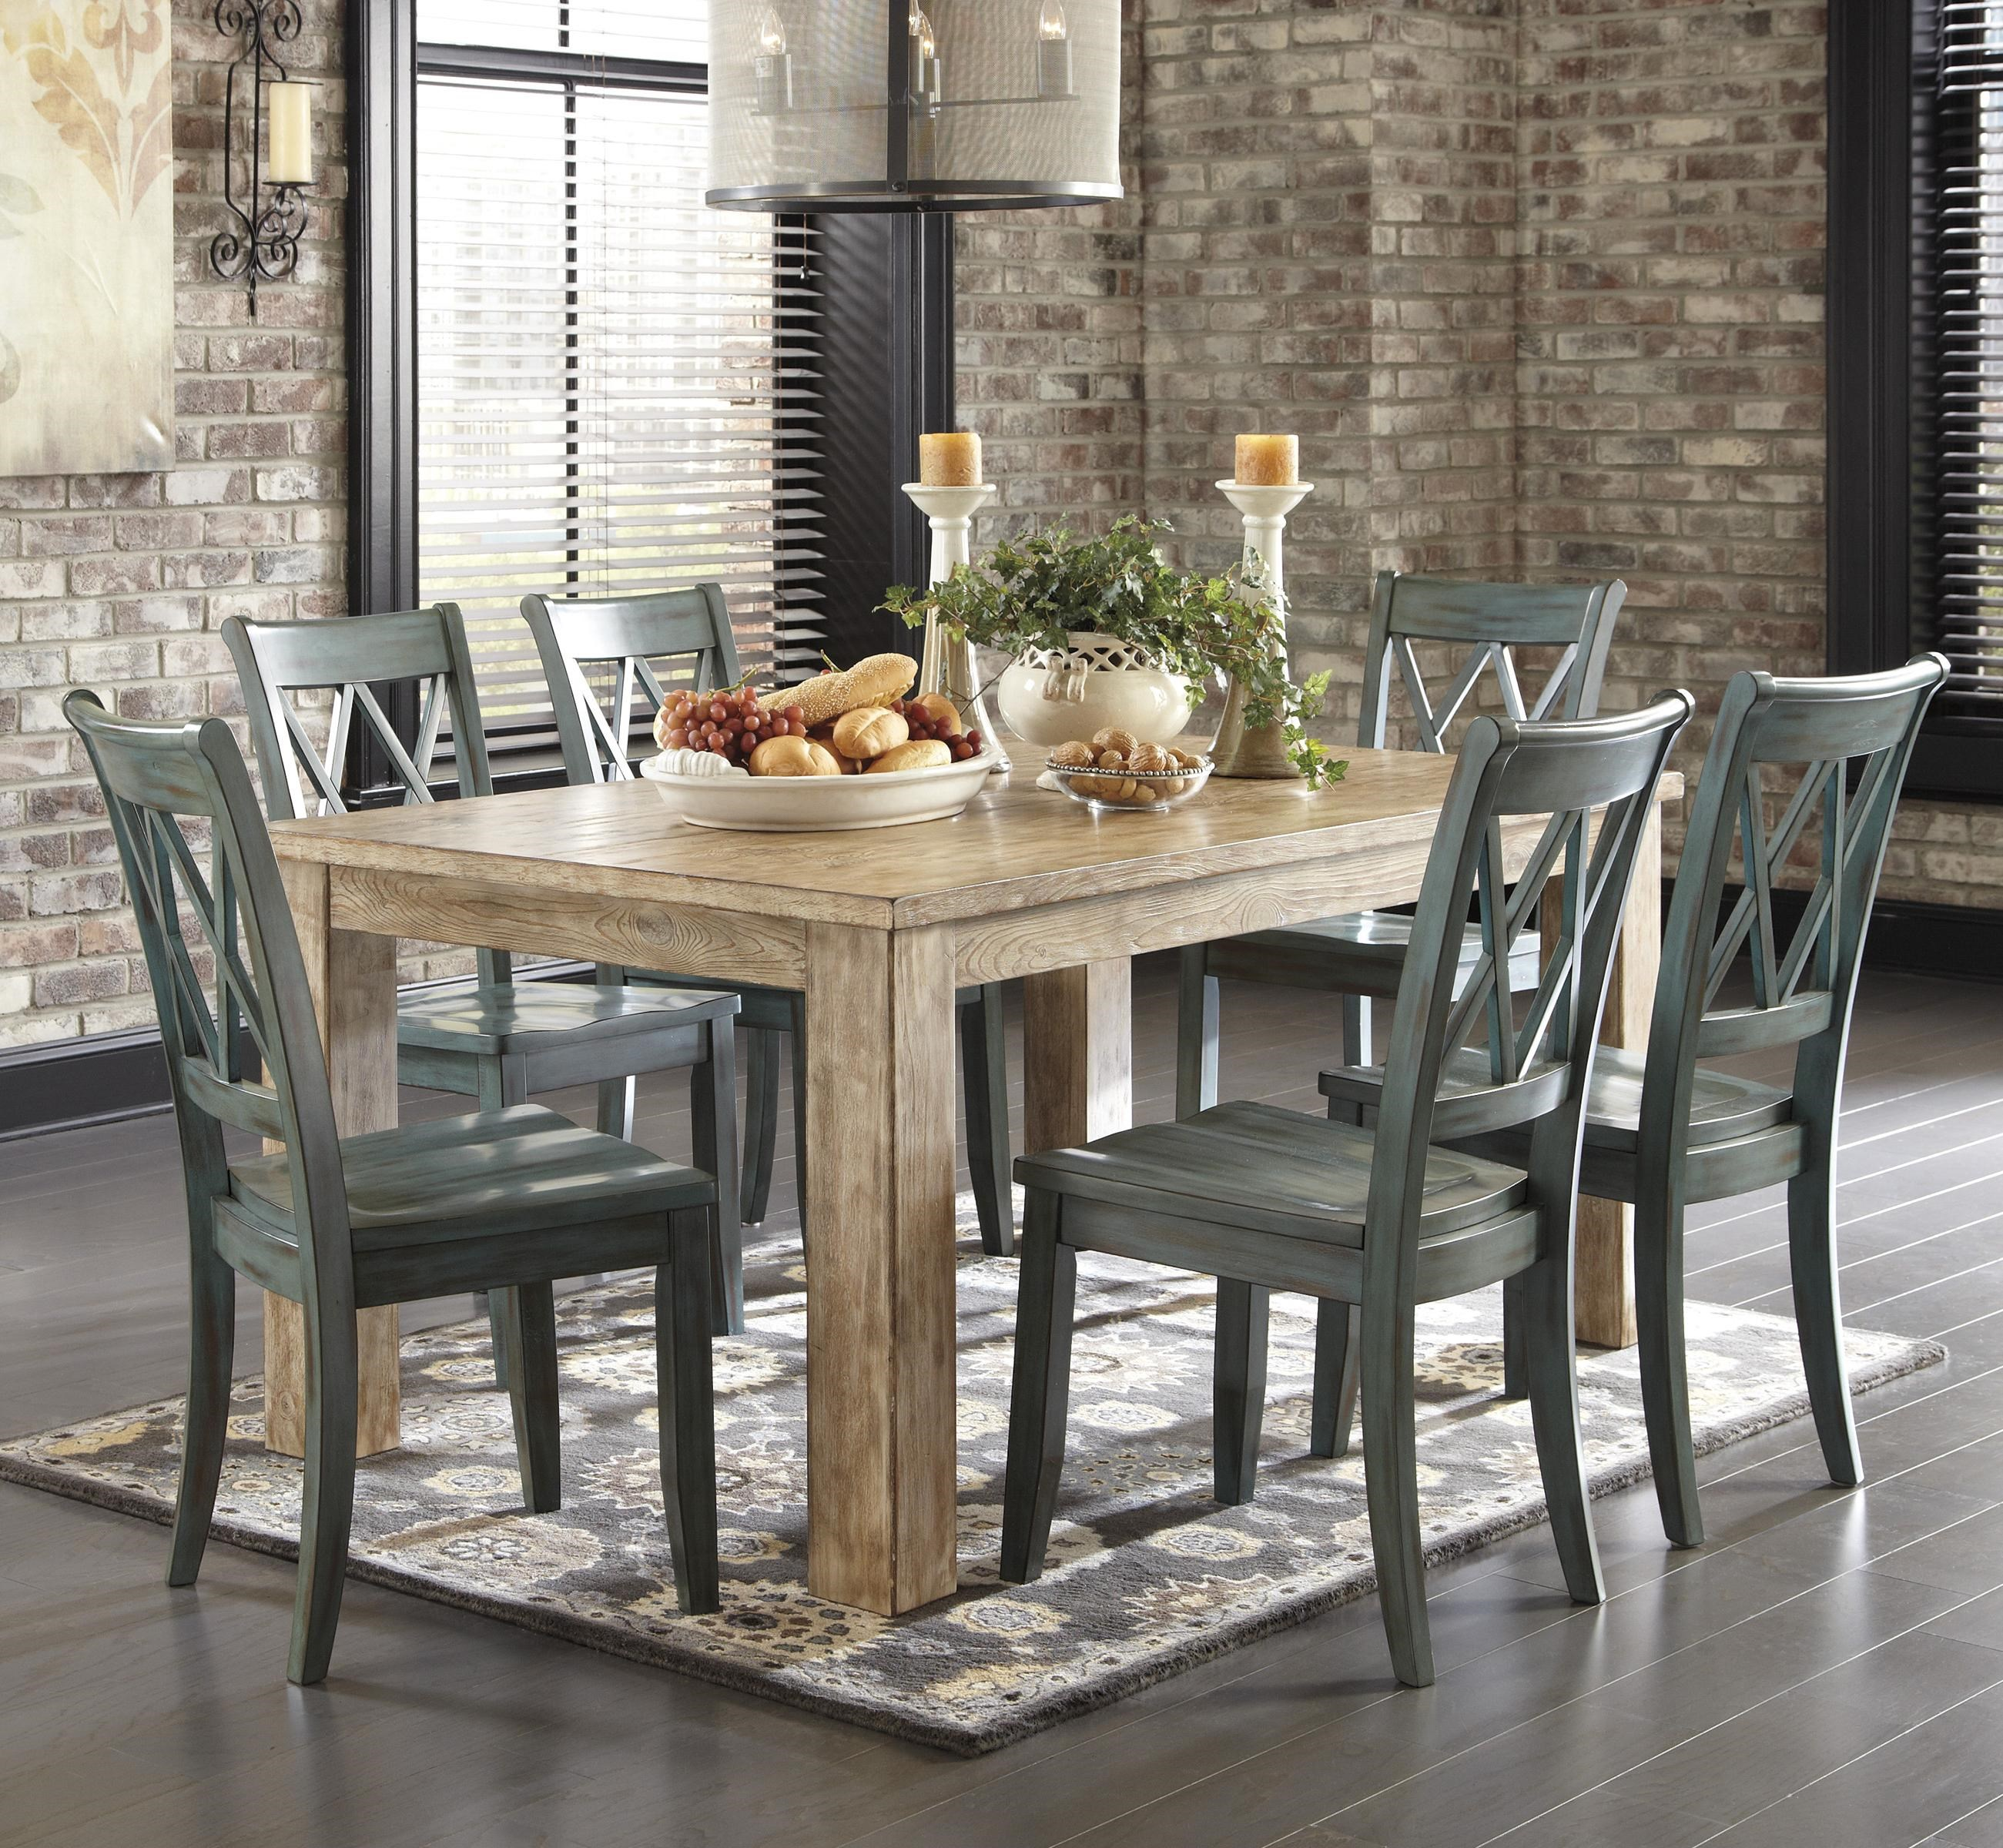 Signature Design by Ashley Mestler 7-Piece Table Set with Antique Blue/Green Side & Signature Design by Ashley Mestler 7-Piece Table Set with Antique ...